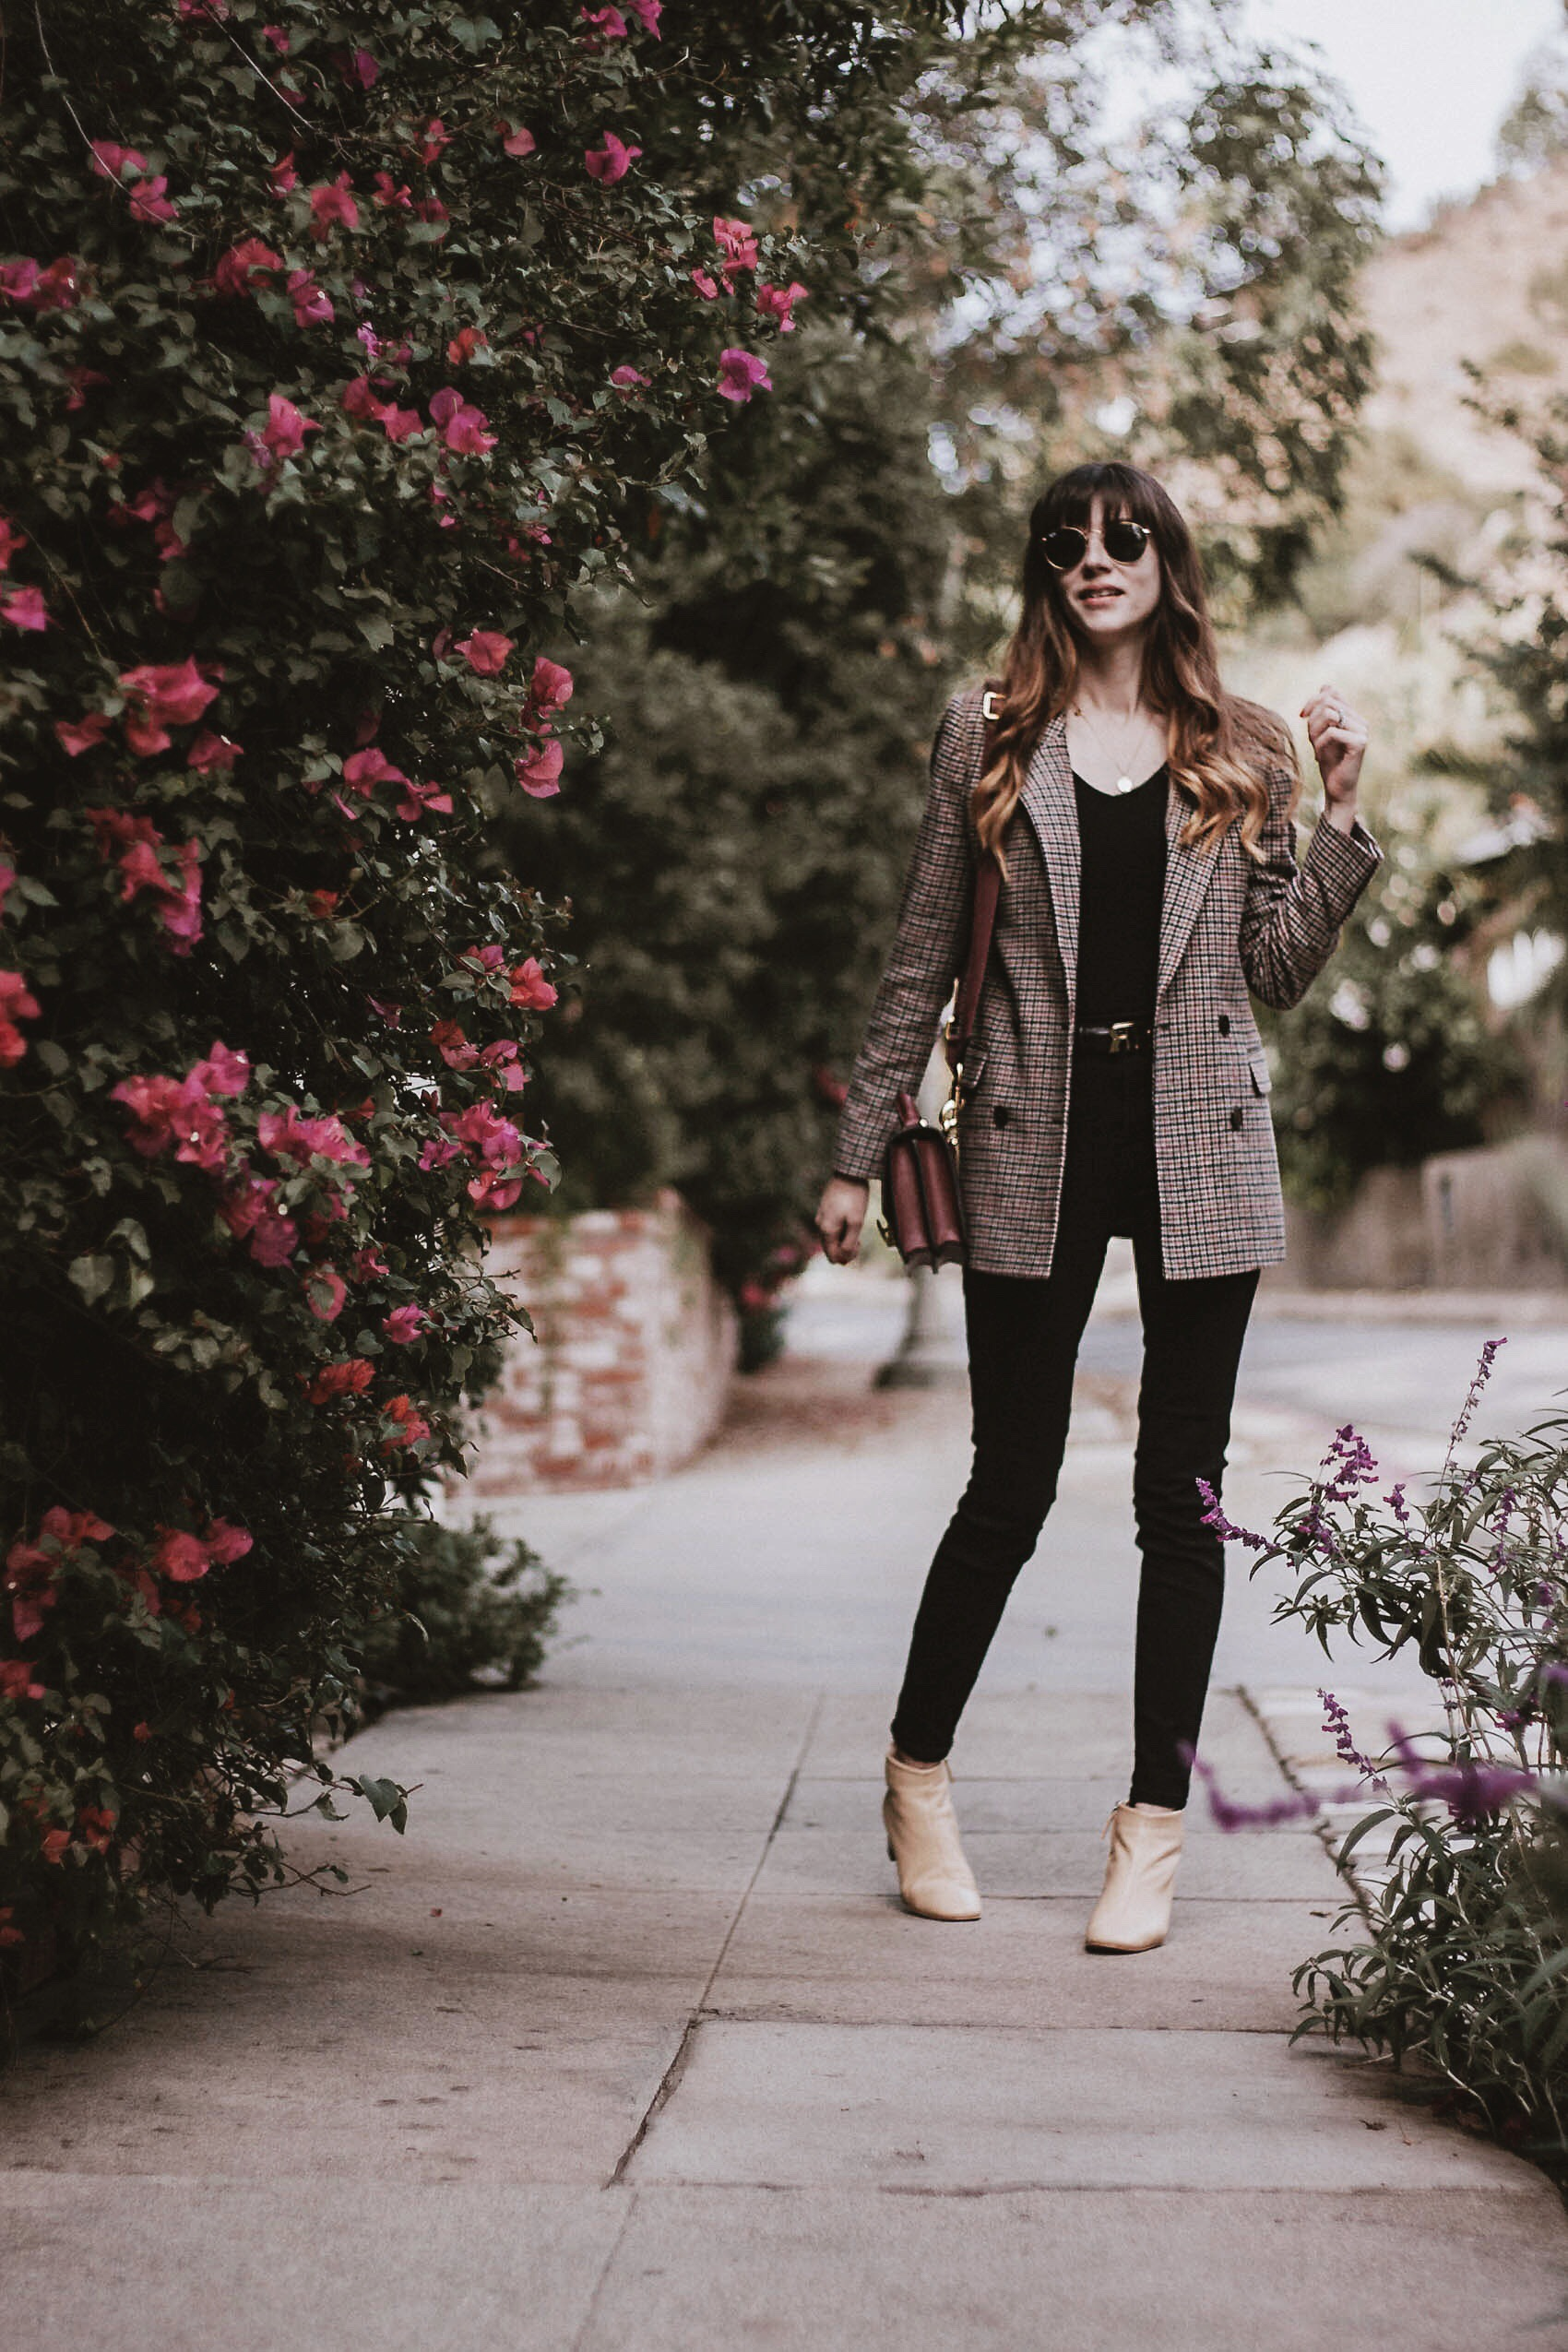 Ethical fashion blogger wearing Everlane and Frank + Oak